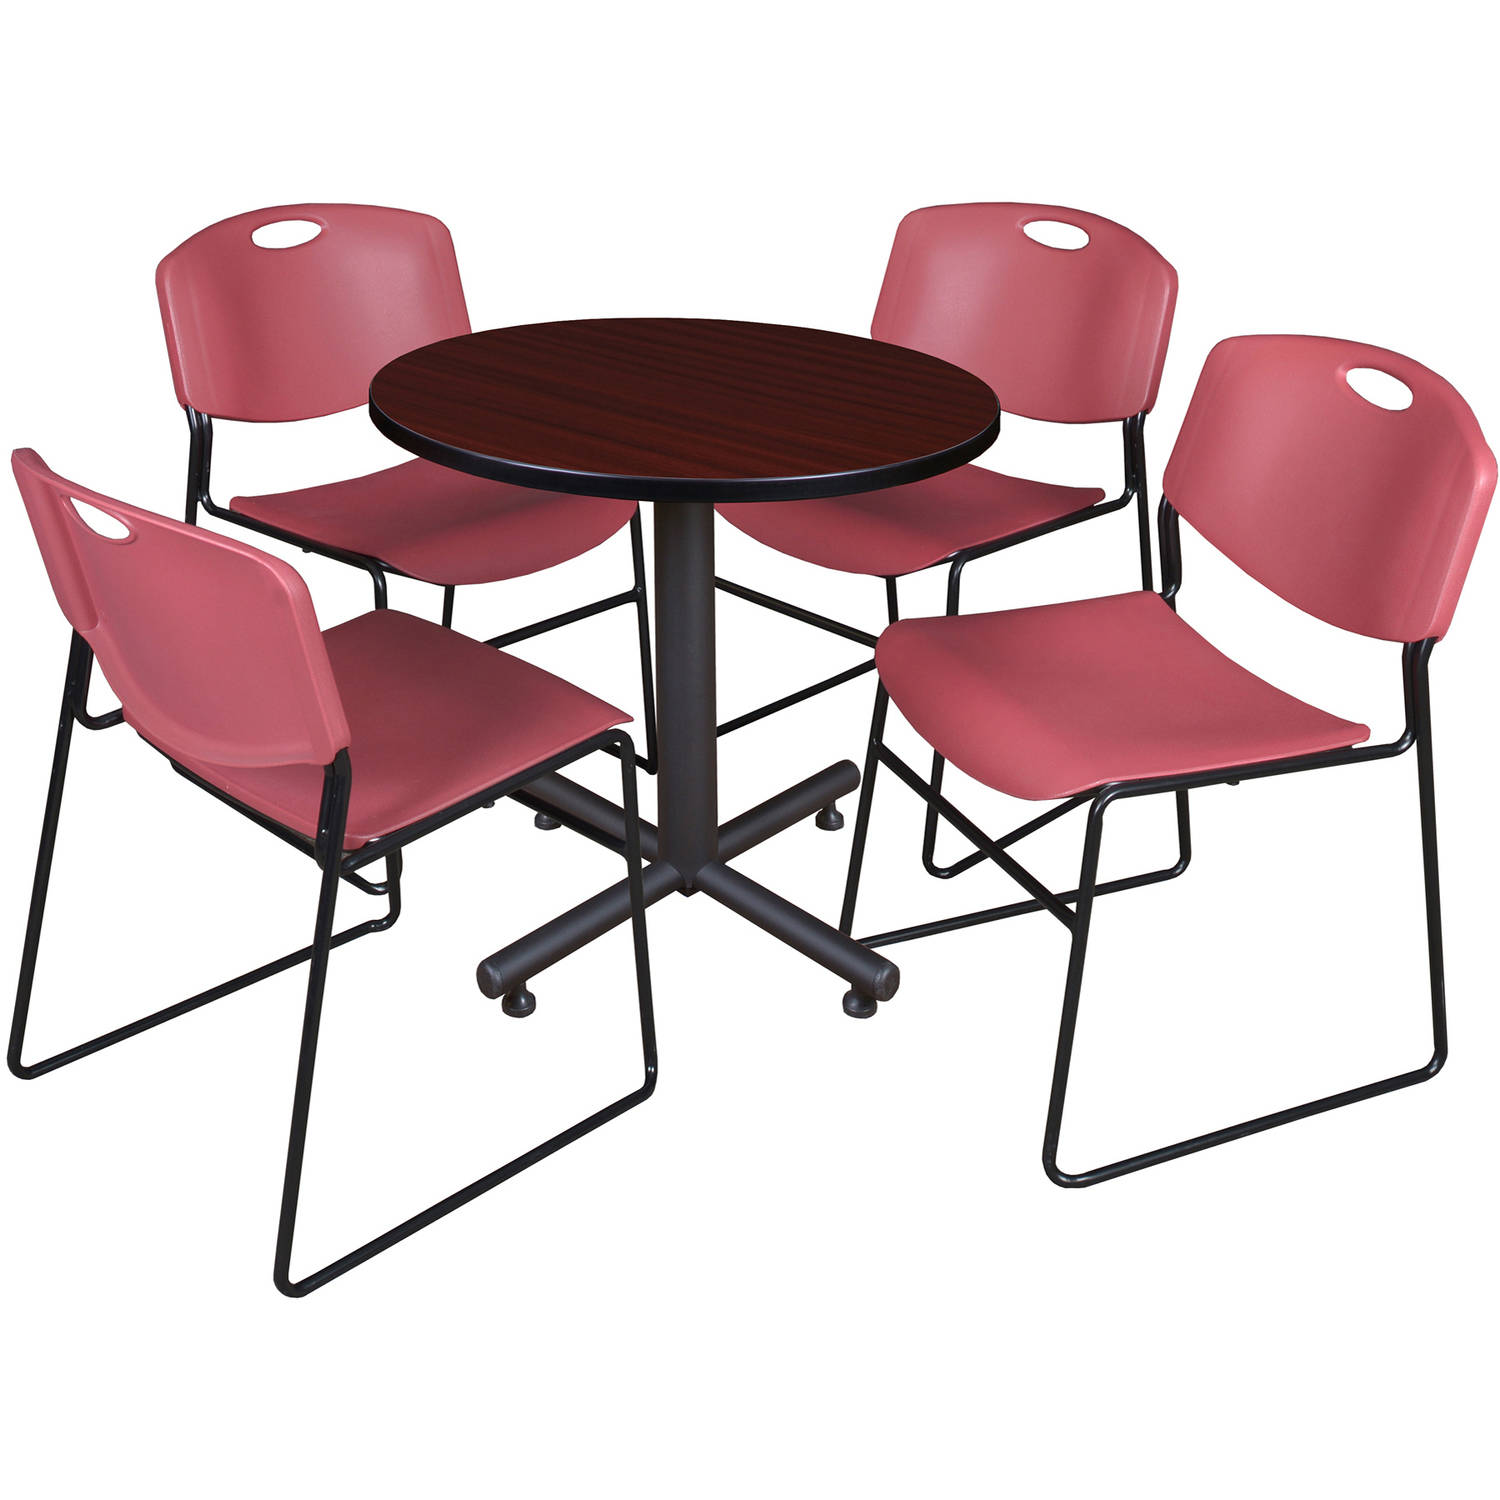 Regency Round Table with 4 Zeng Stack Chairs in Mahogany and Burgundy-30""